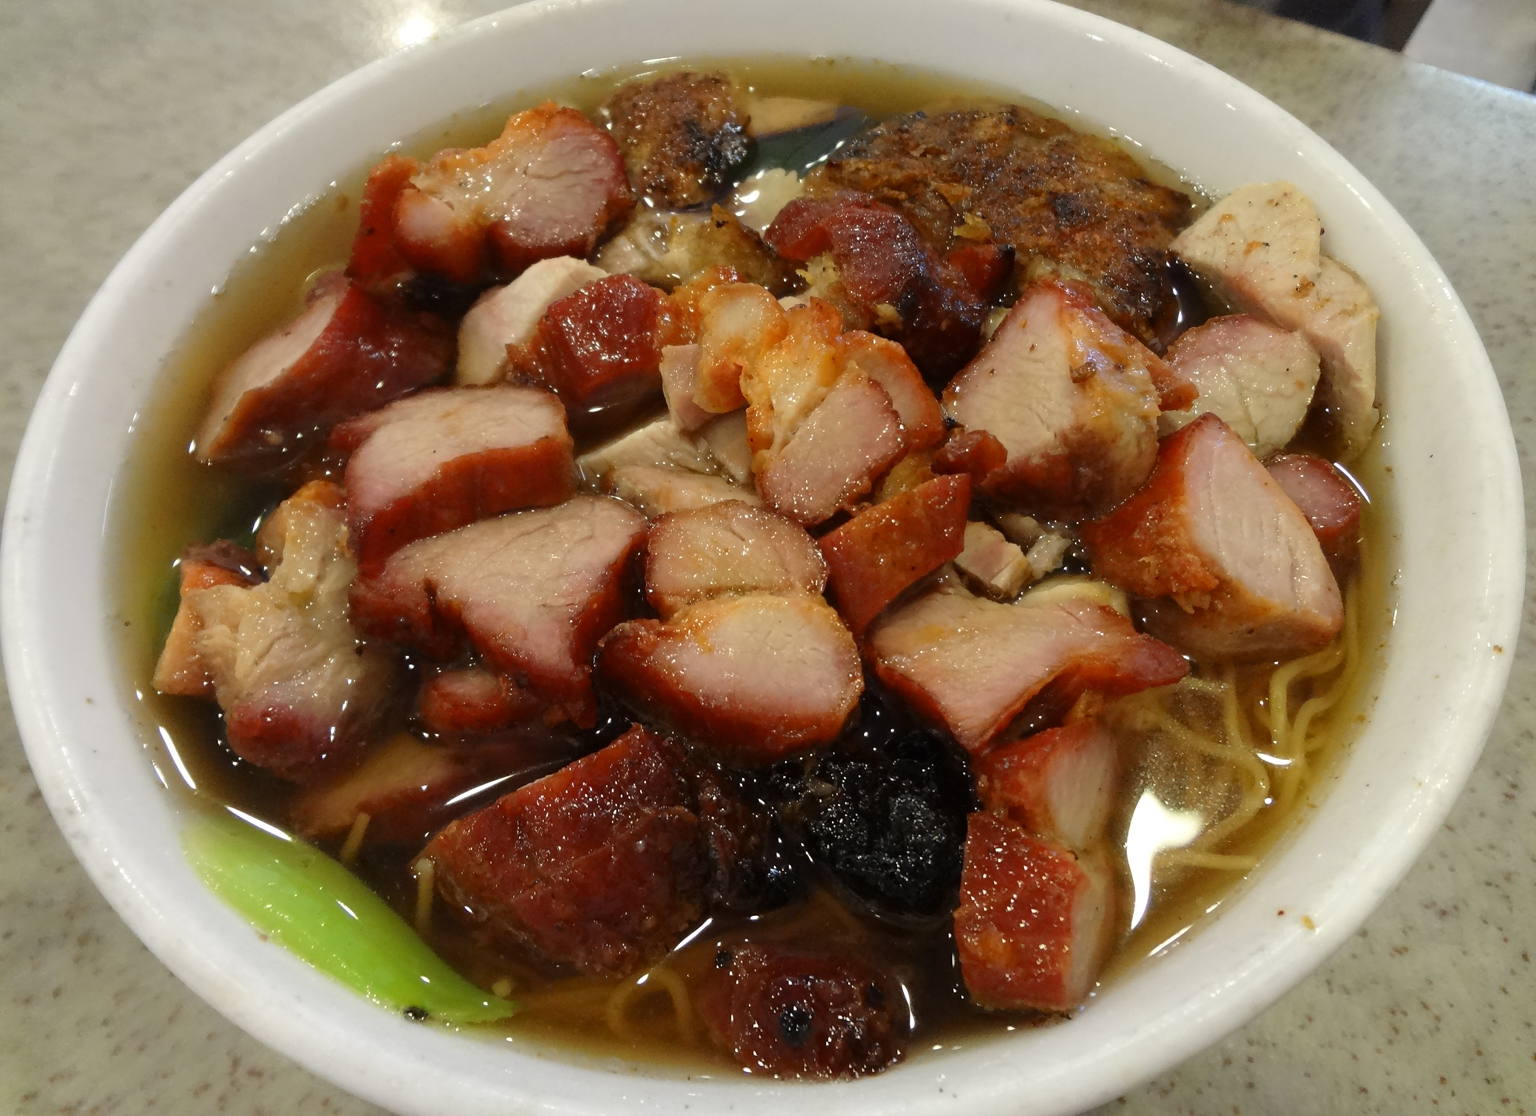 BBQ pork noodle soup with two types of pork